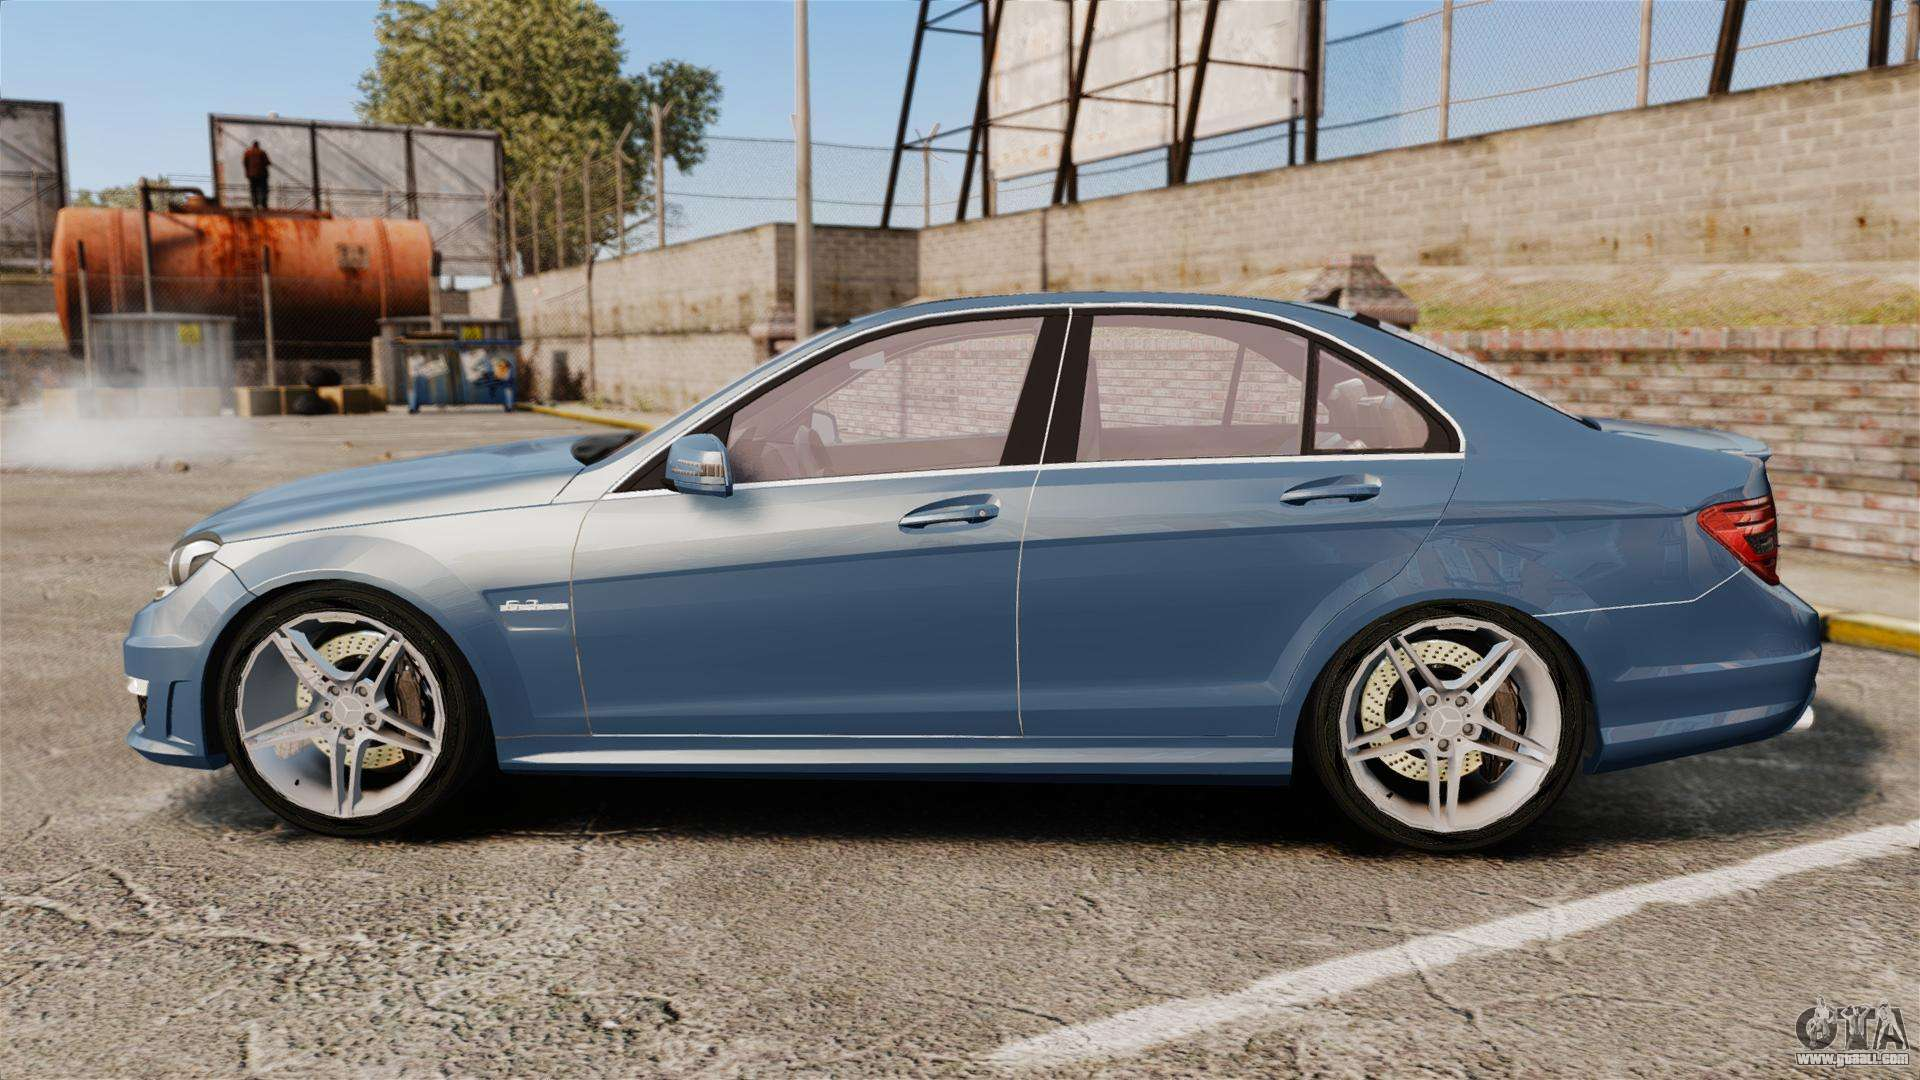 Mercedes benz c63 amg 2013 for gta 4 for 2013 mercedes benz c63 amg